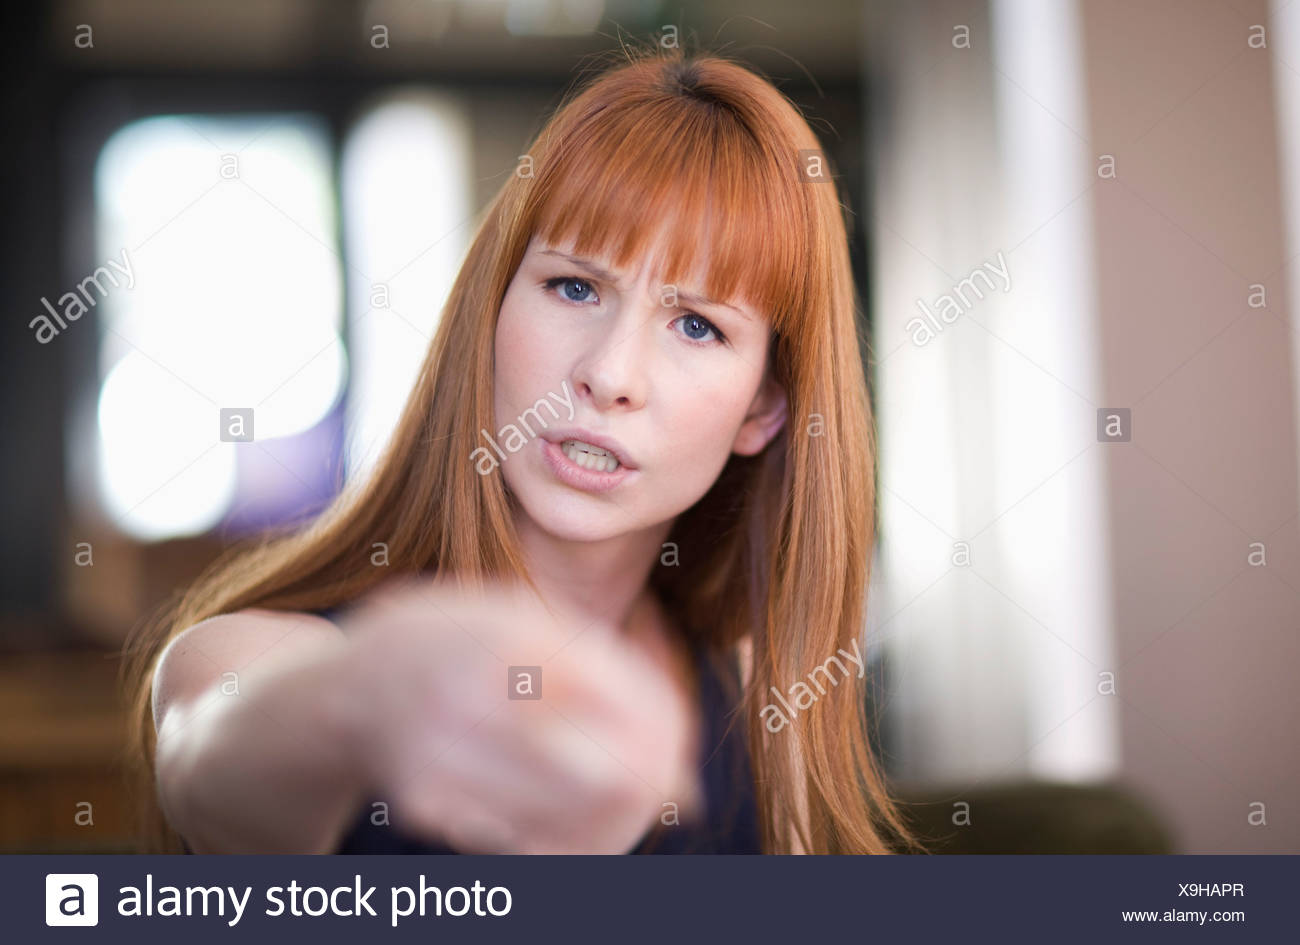 Woman argueing with somebody - Stock Image